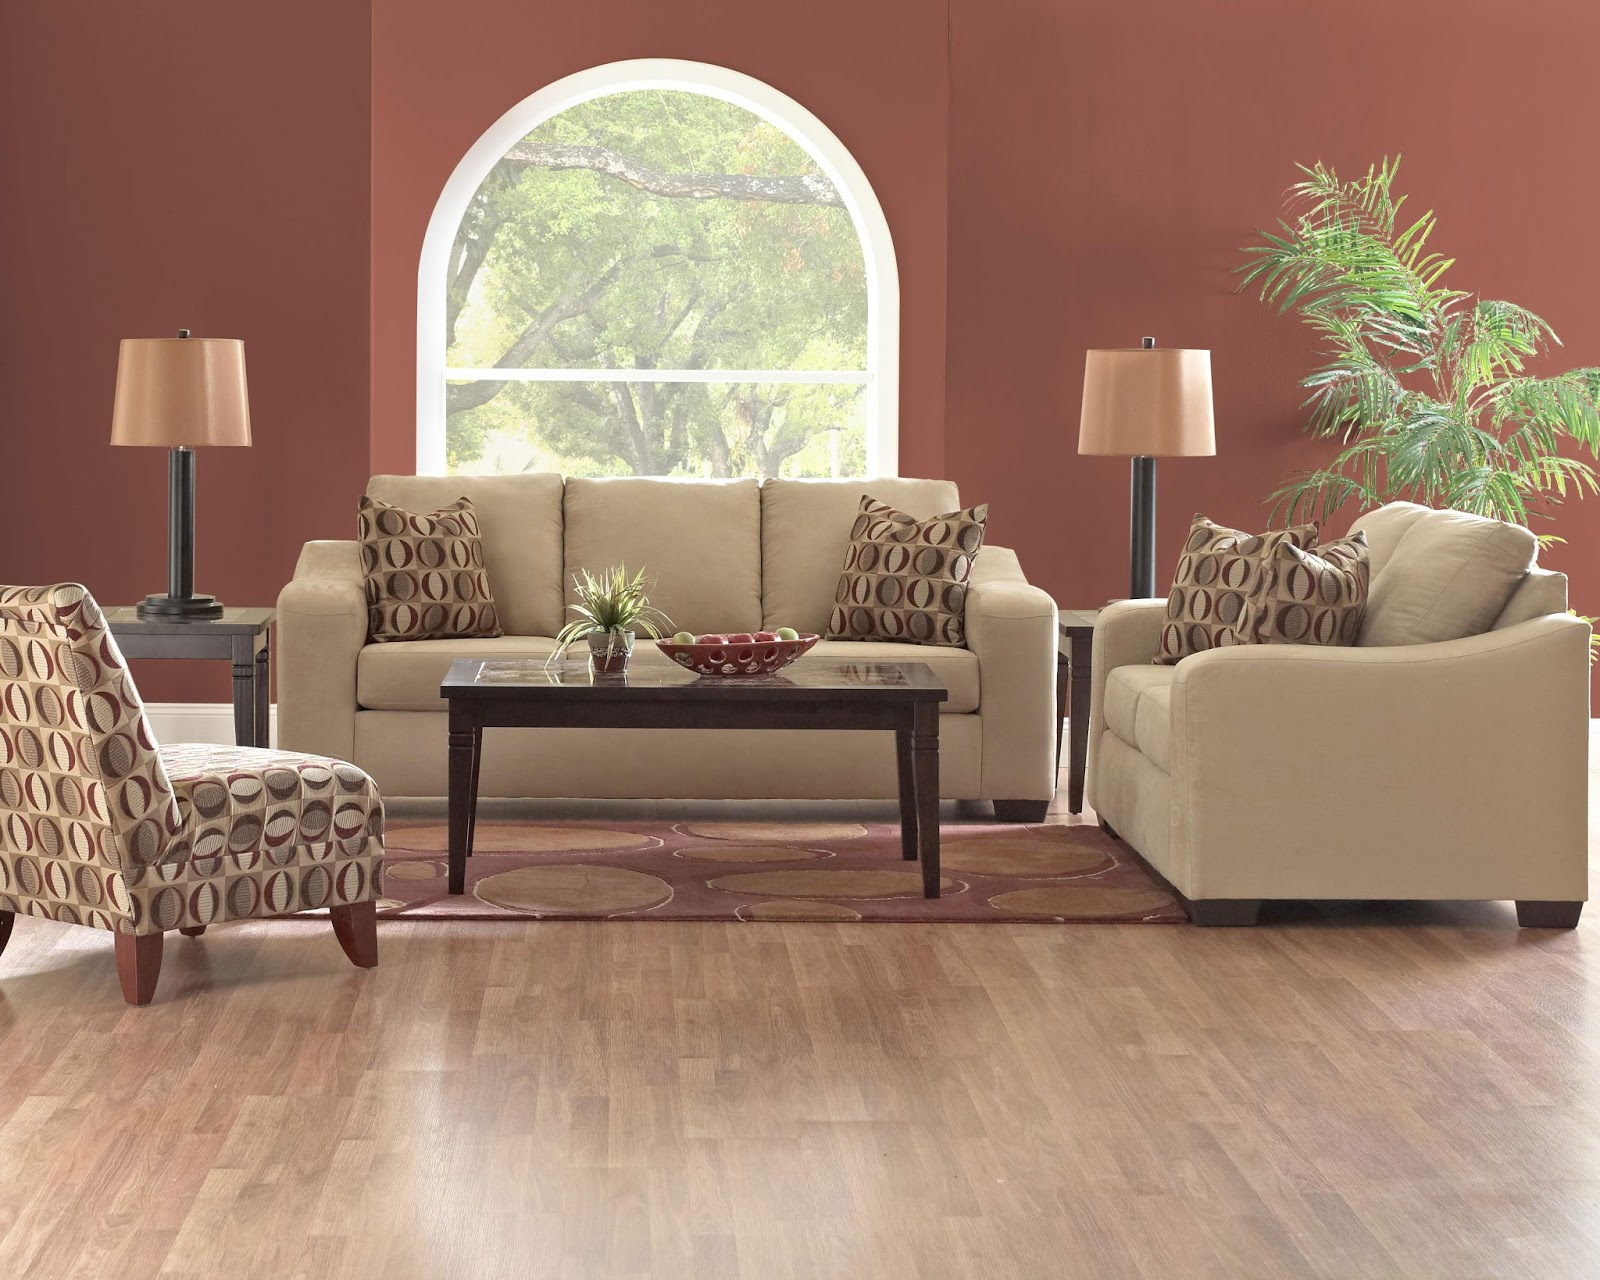 Paint Colors That Will Make A Room Look Bigger - Zion Star